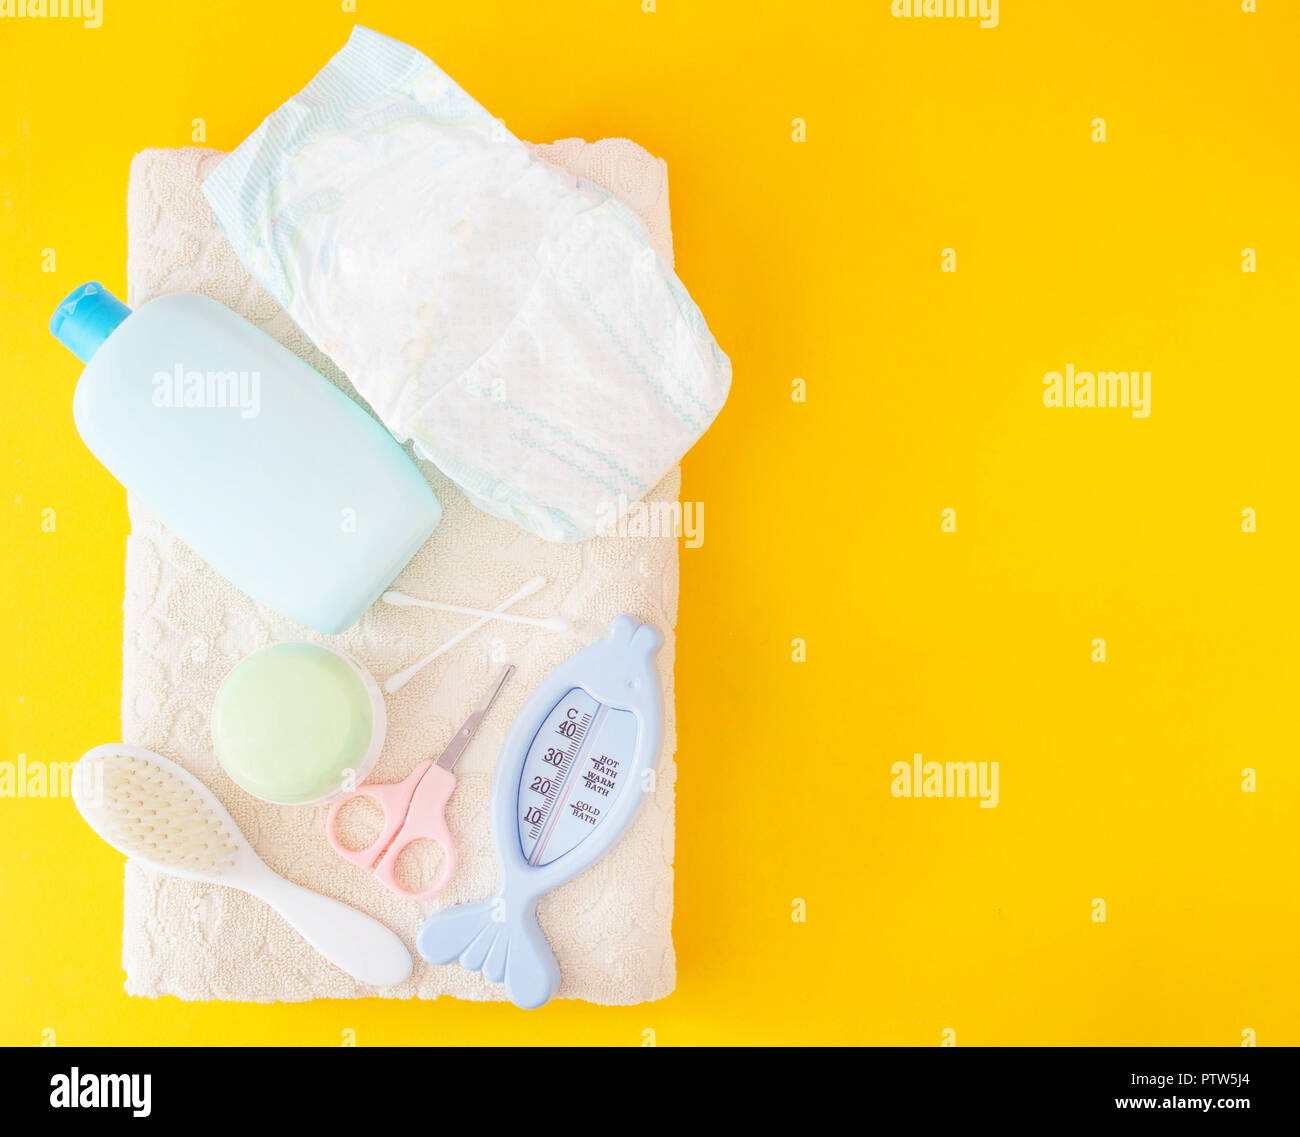 Baby bathing accessories, diaper, yellow background Stock Photo